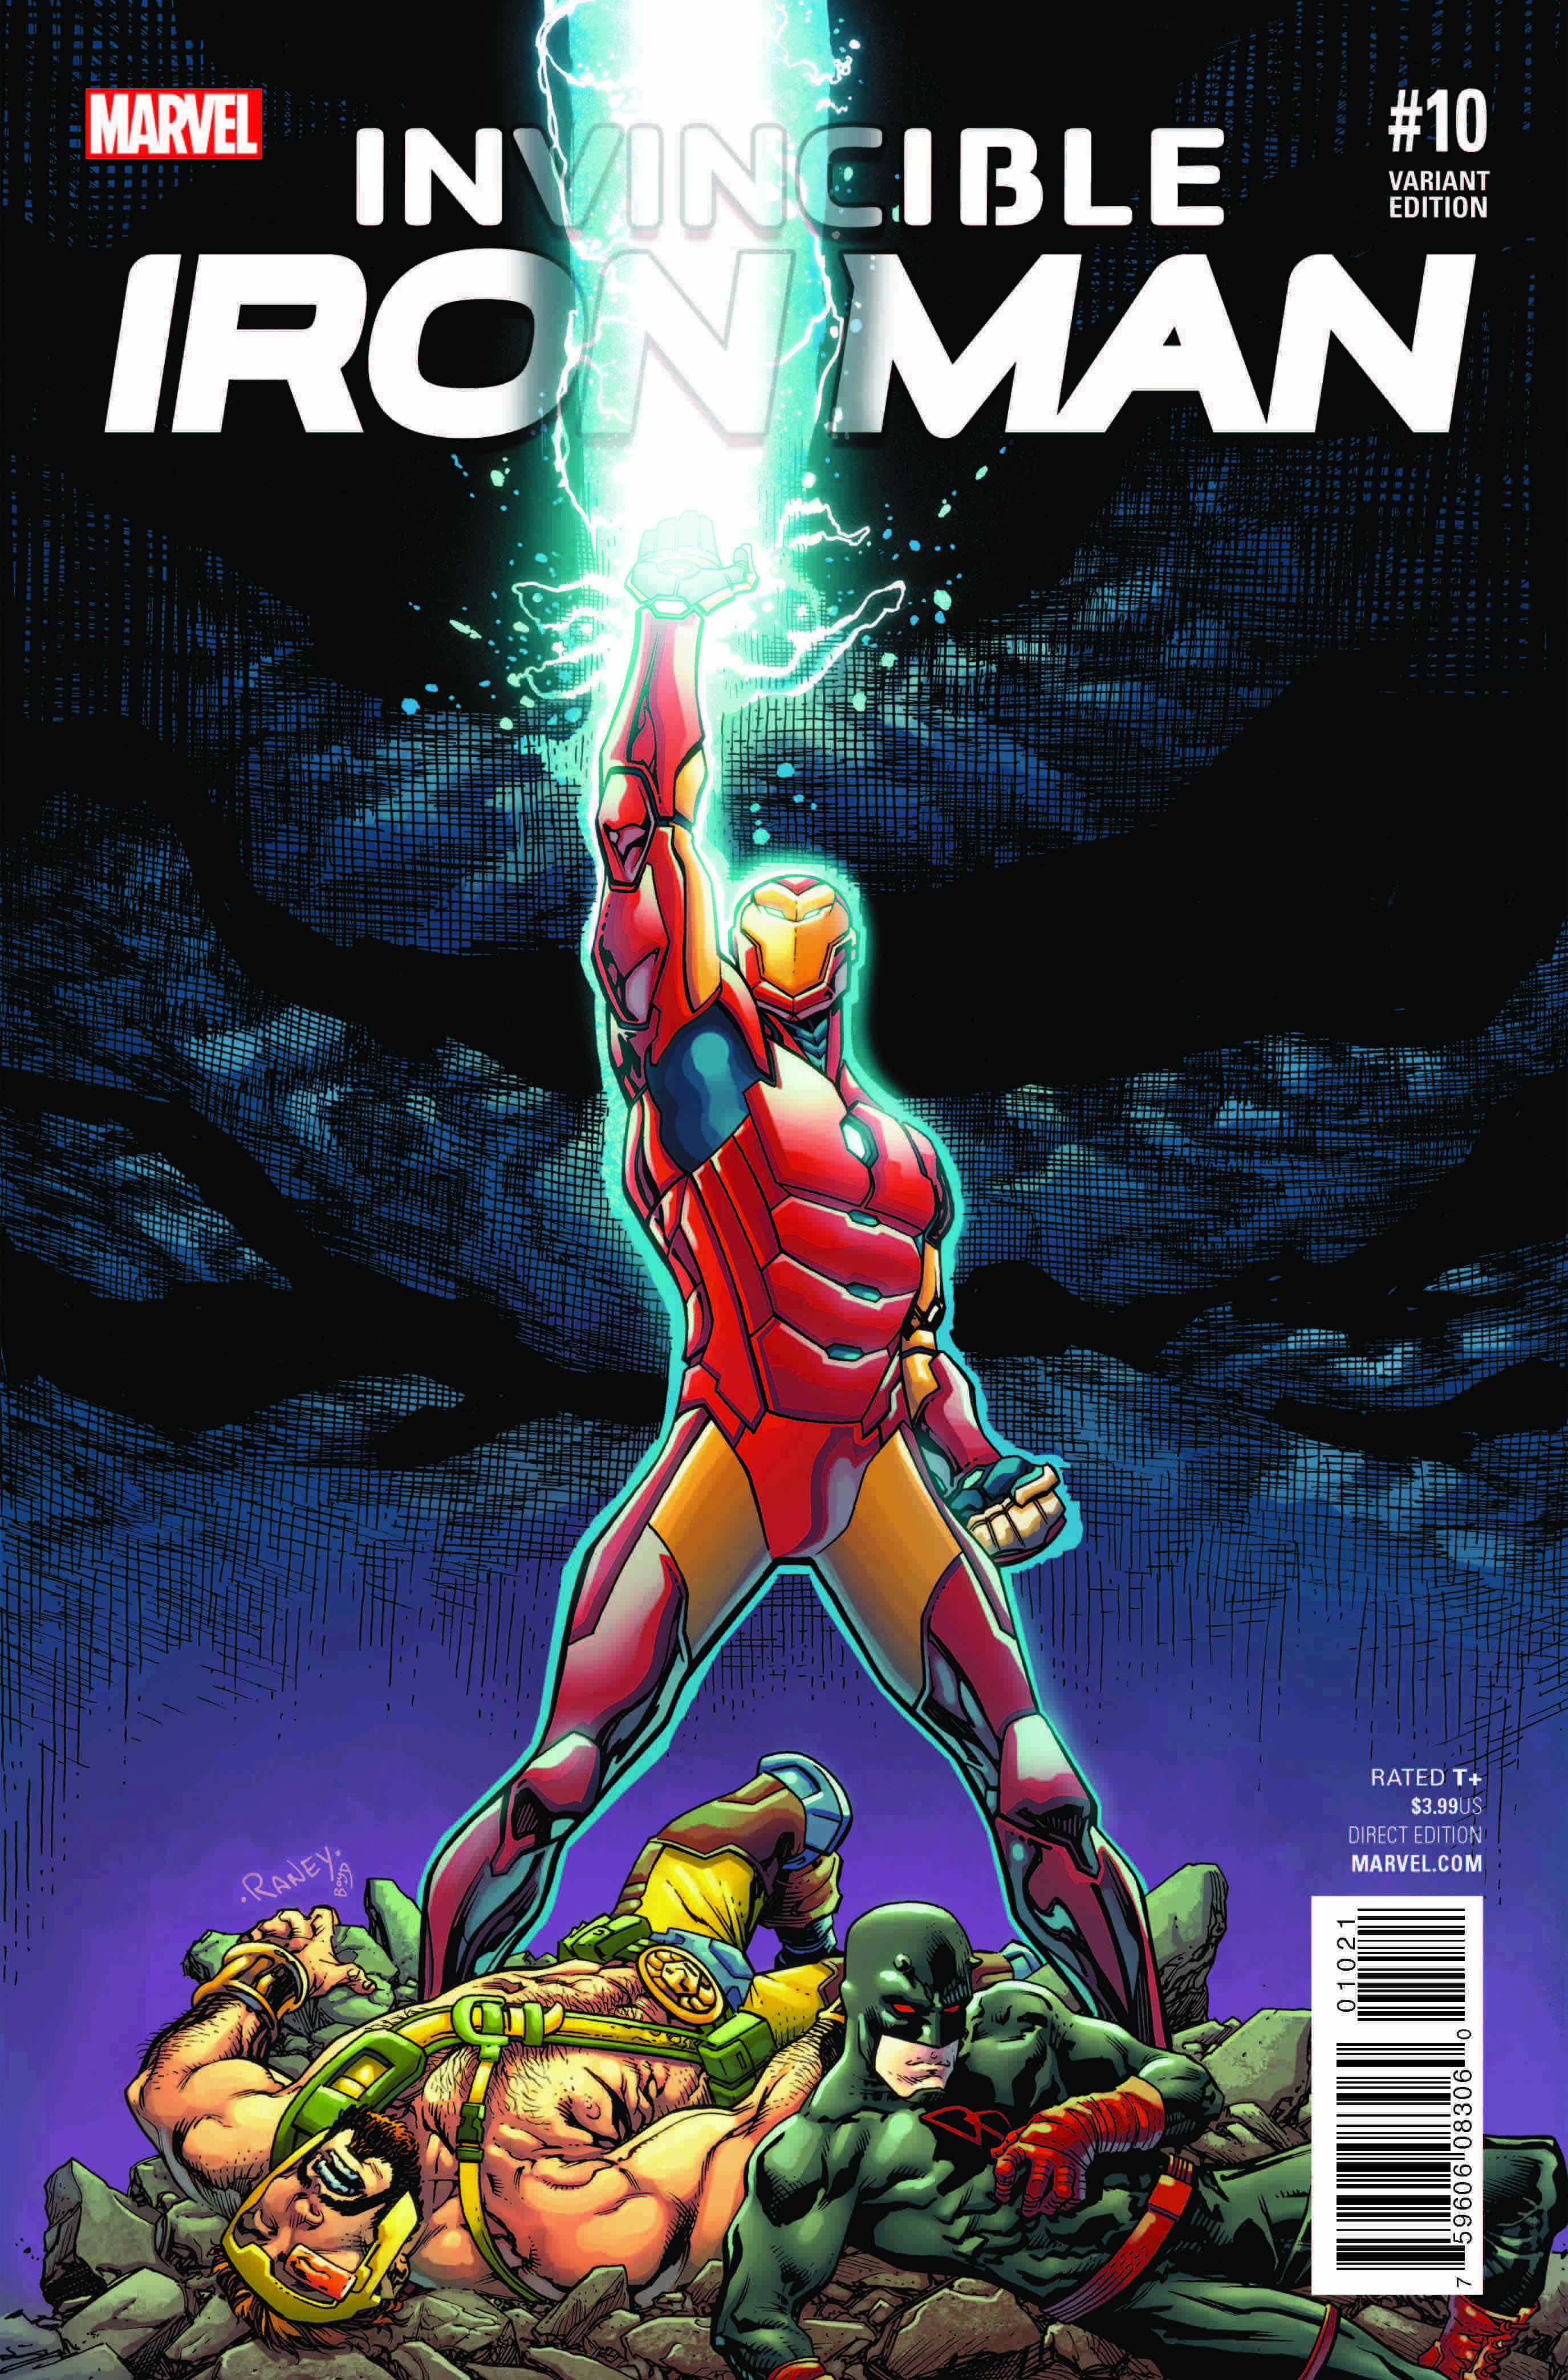 Marvel Preview: Invincible Iron Man #10